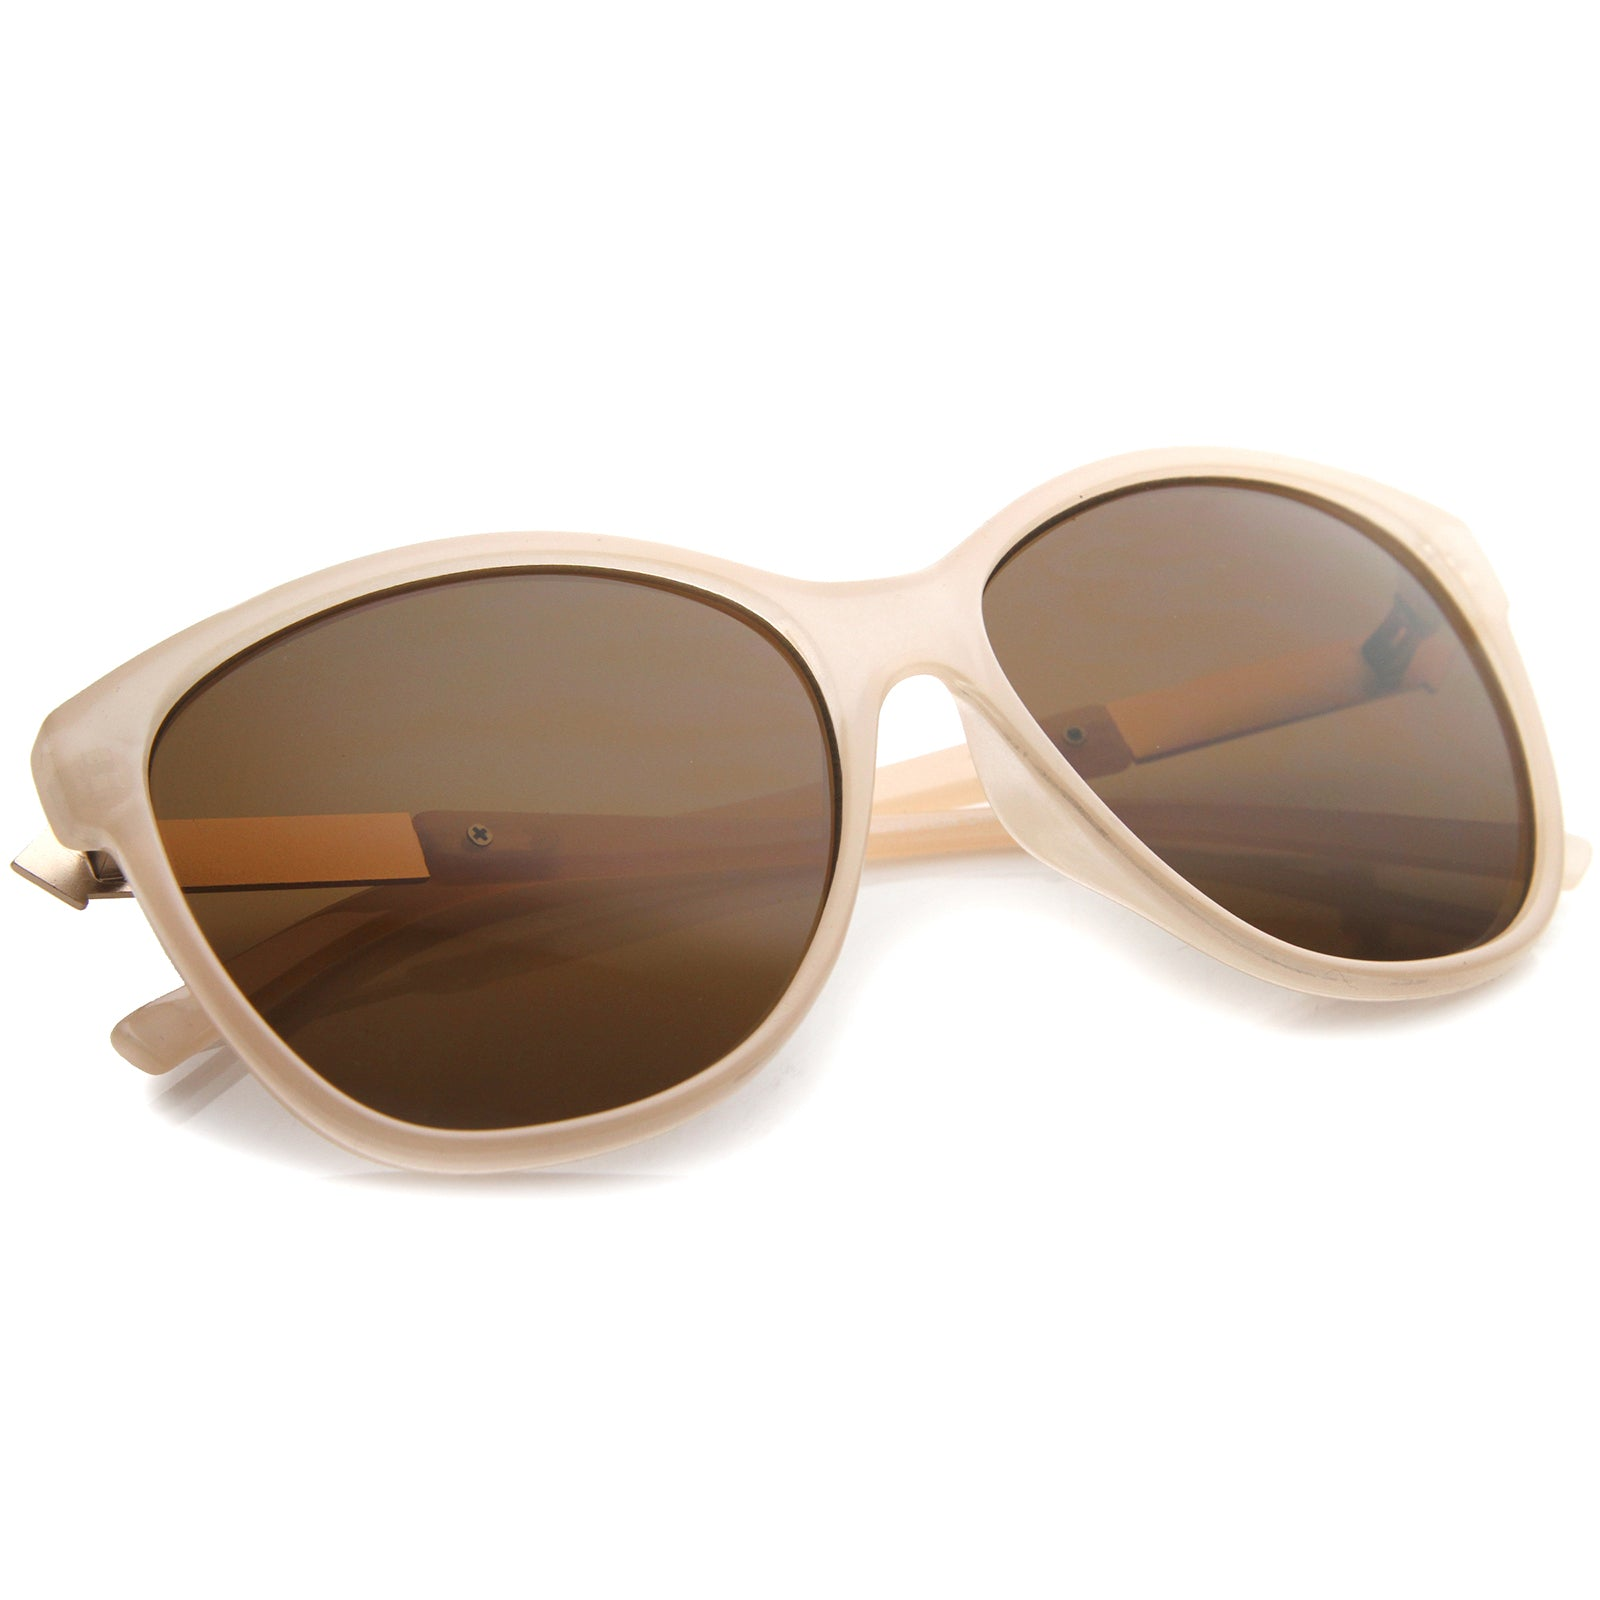 Women's Glam Fashion Metal Temple Oversize Cat Eye Sunglasses 59mm - sunglass.la - 16